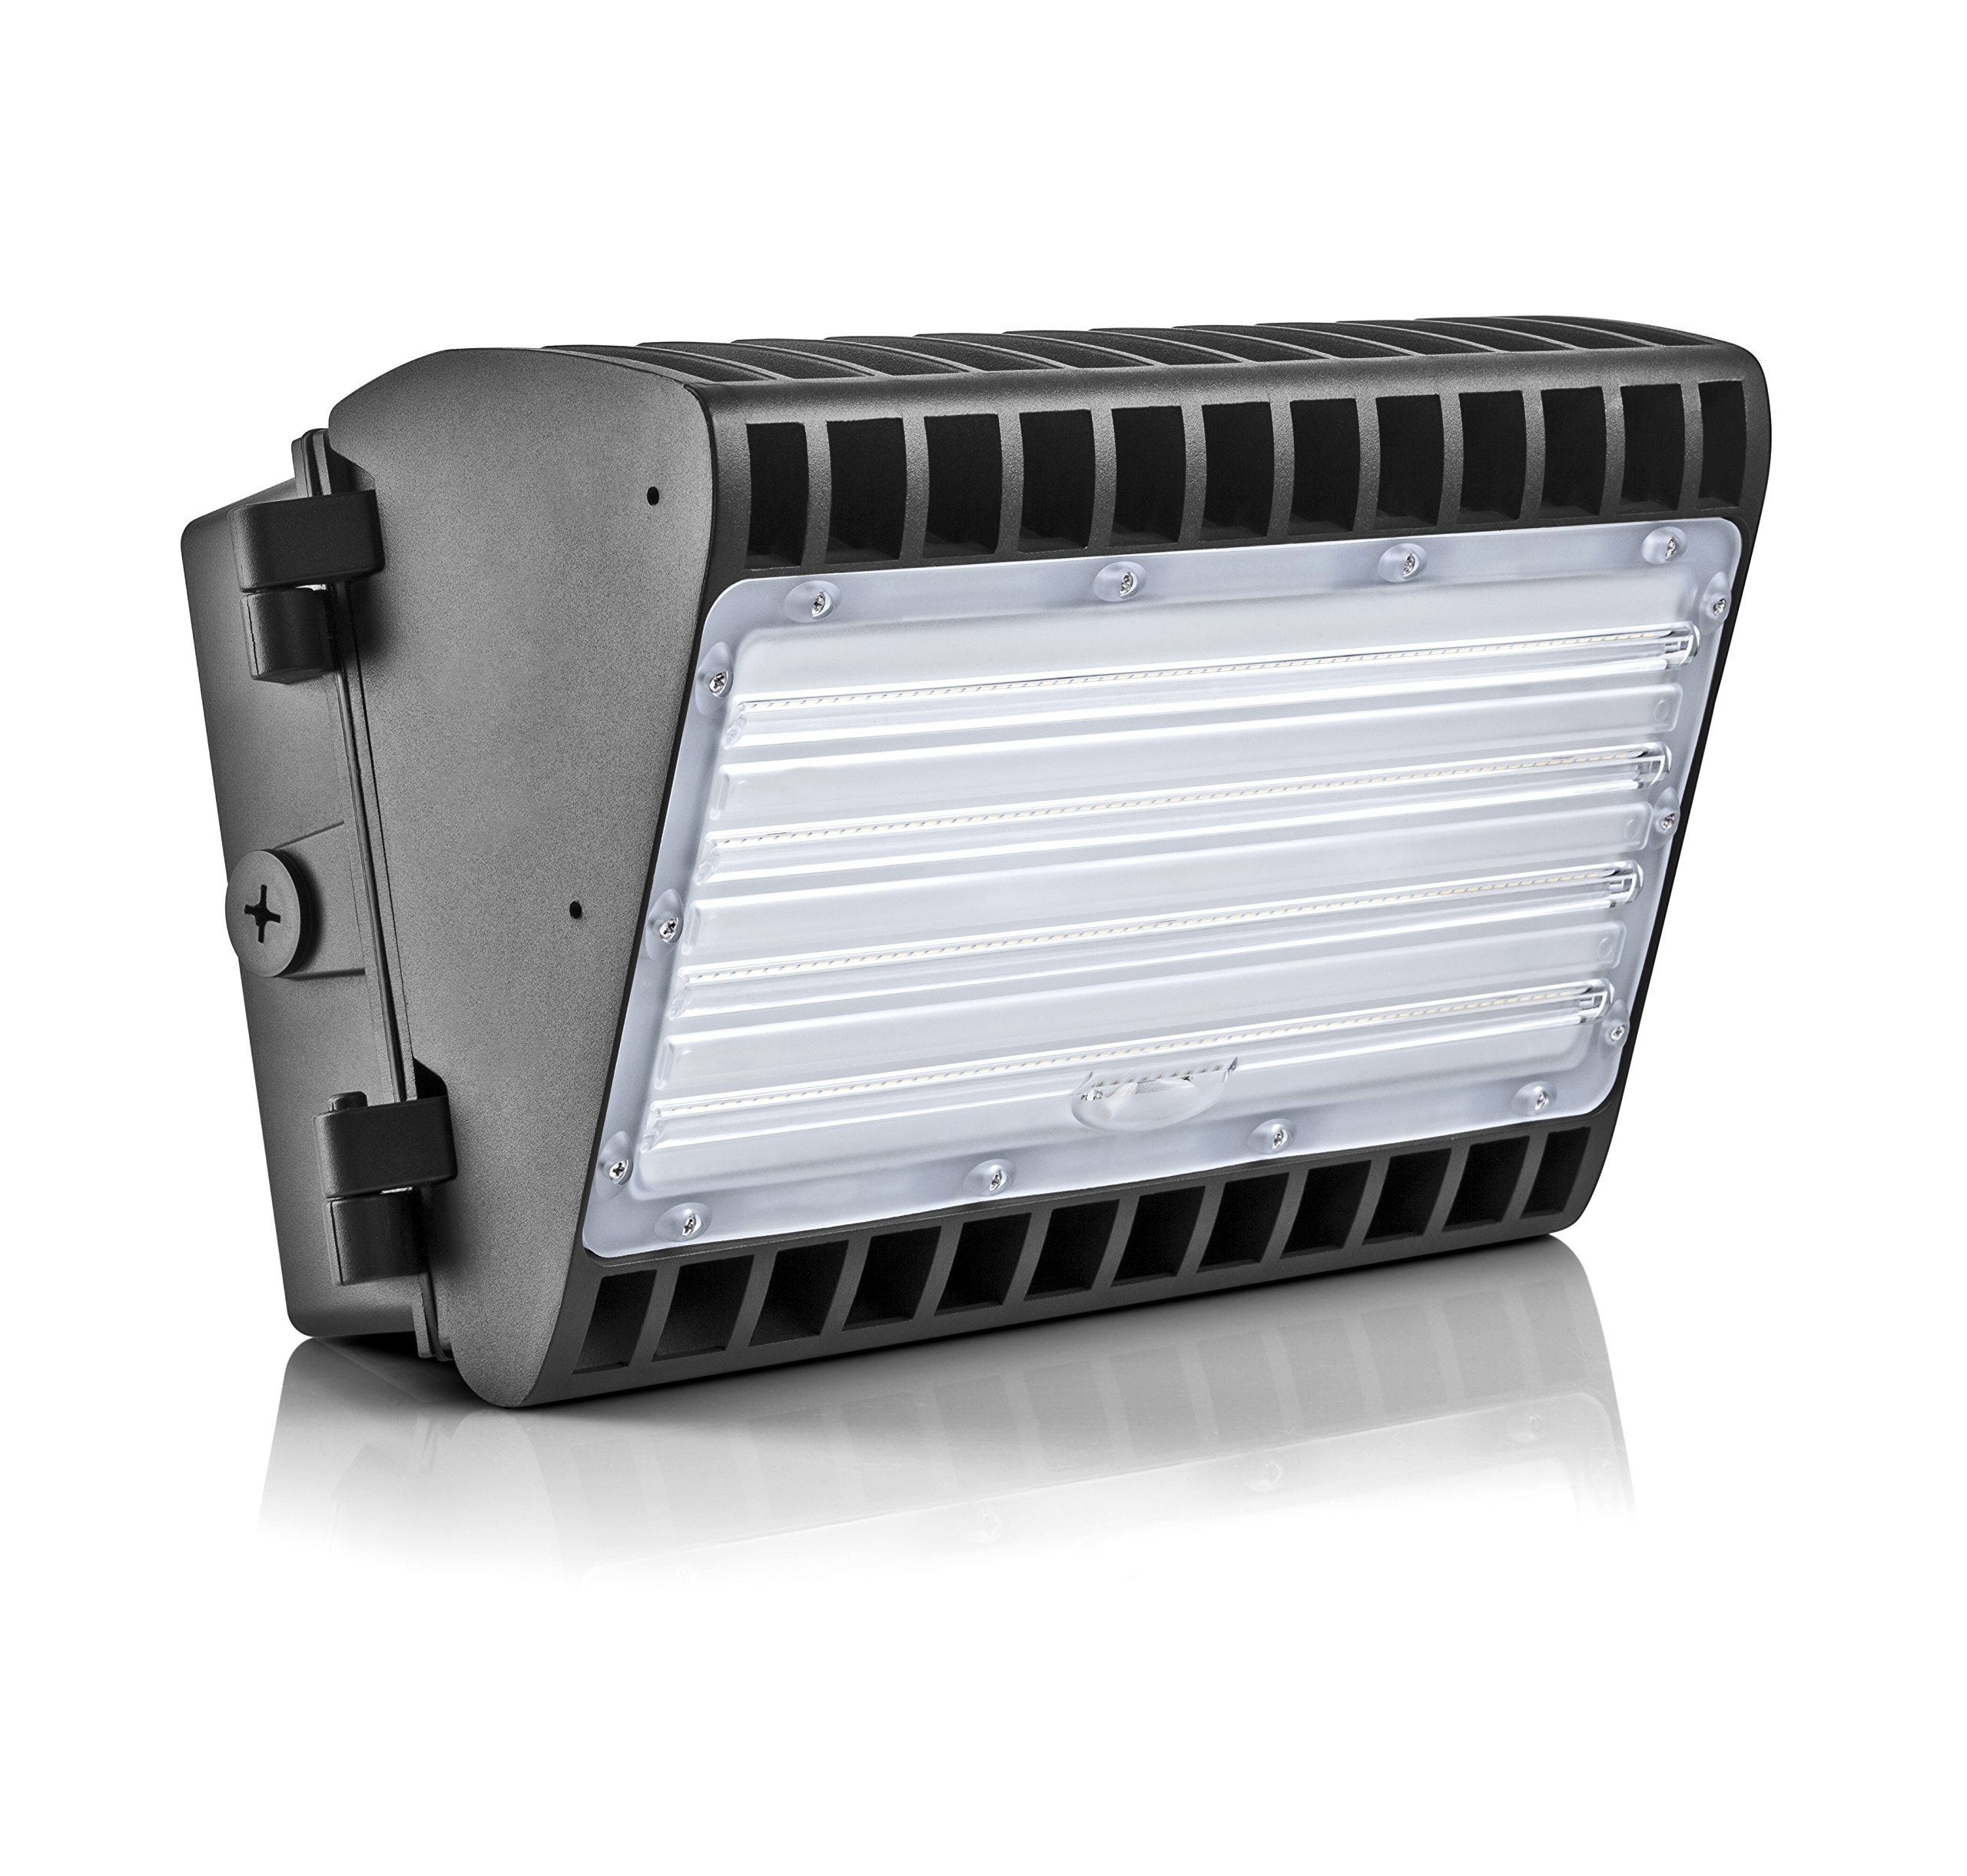 Hyperikon LED 120W Wall Pack Half Cutoff Fixture, 840W HPS/HID Replacement, 5000K, 15,720 Lumens, Waterproof and Outdoor Rated, DLC 4.2 & UL Listed